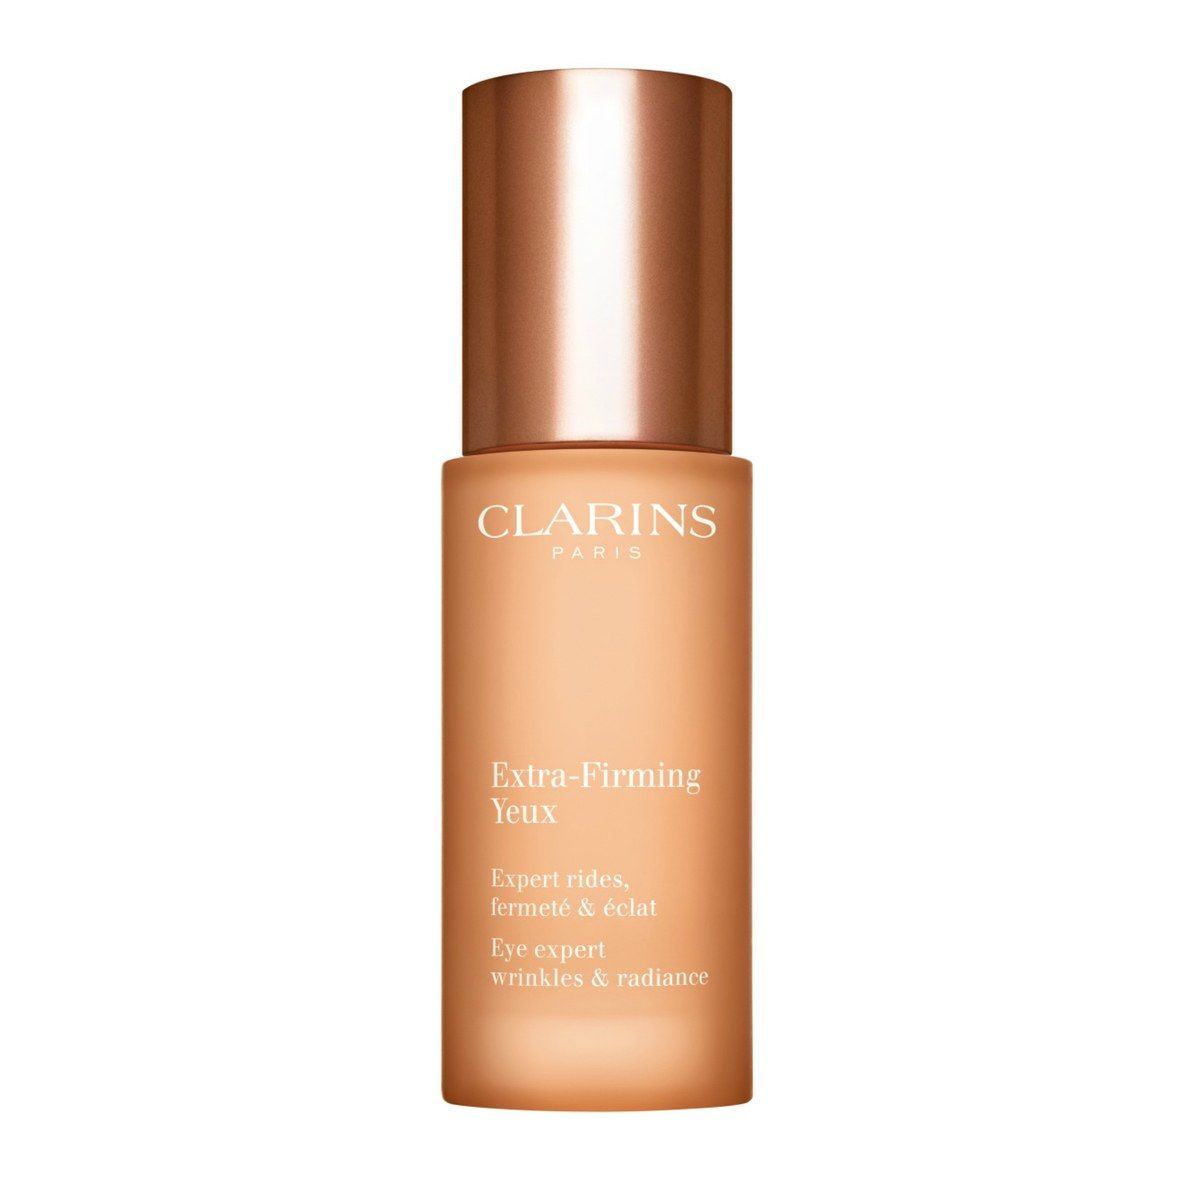 The Best Eye Creams Of 2020 Editor Reviews Best Eye Cream Eye Cream Clarins